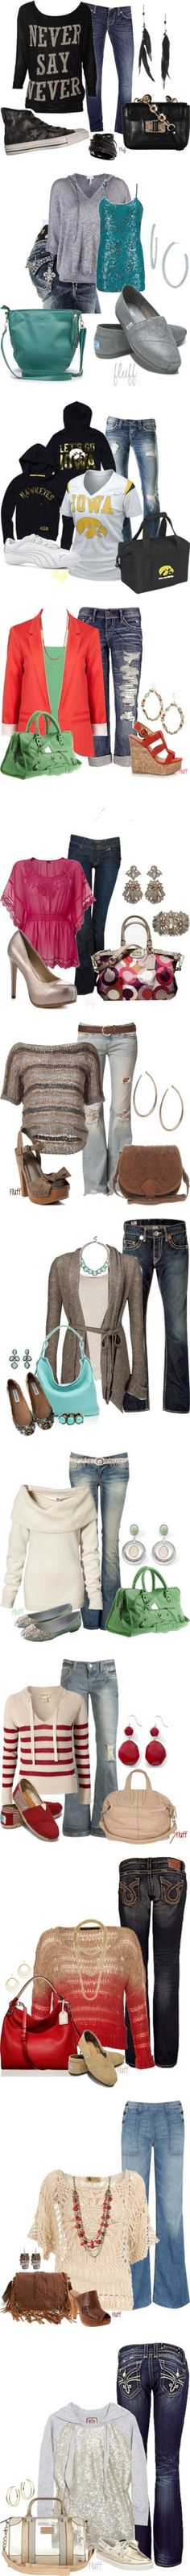 """Cozy for fall"" by lluikart on Polyvore"